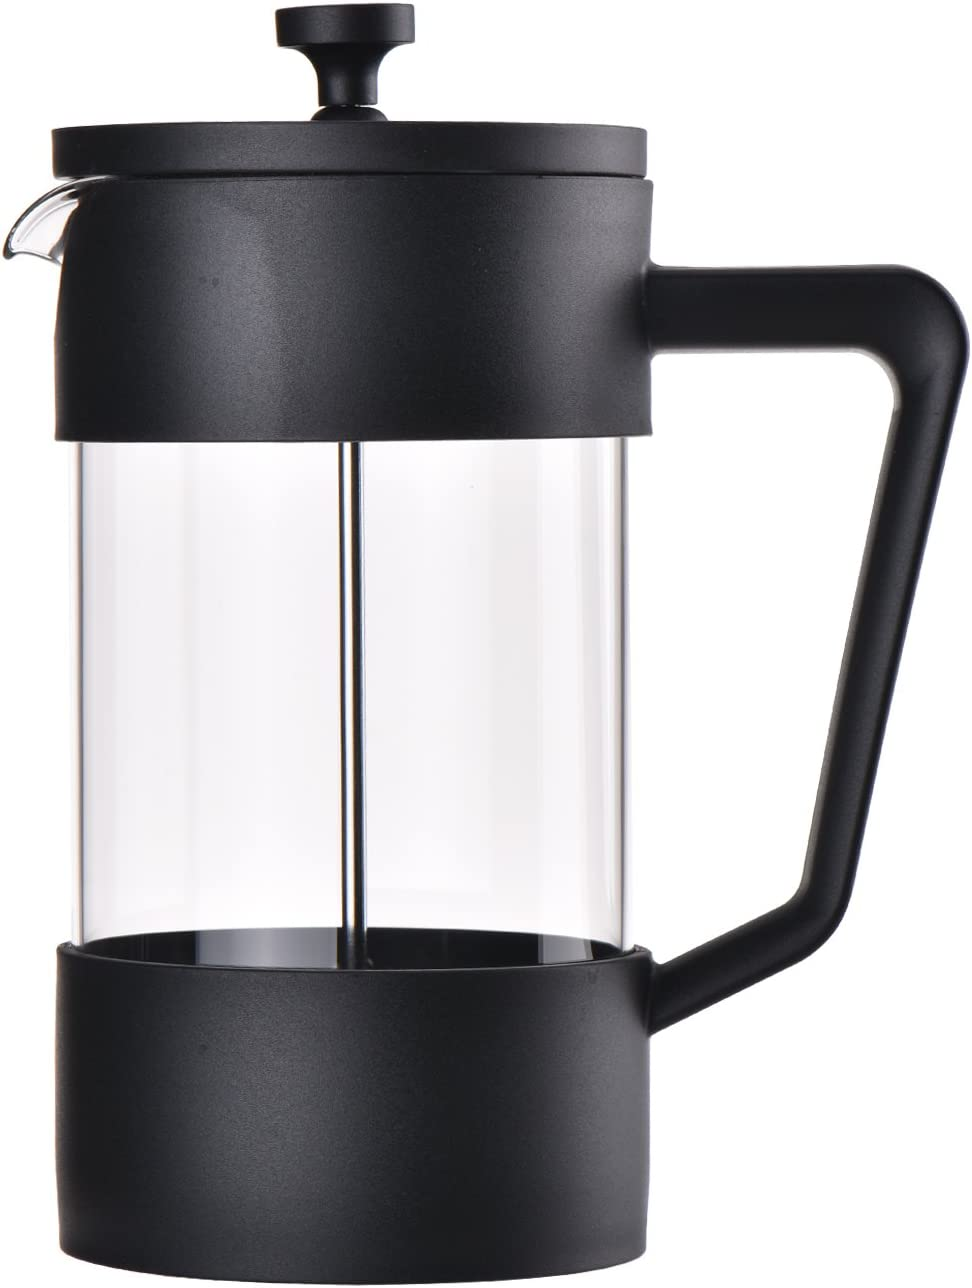 French Press Coffee Tea Makers 8 Cup 1 liter, 34oz 304 Grade Stainless Steel, Heat Resistant Borosilicate Glass Modern